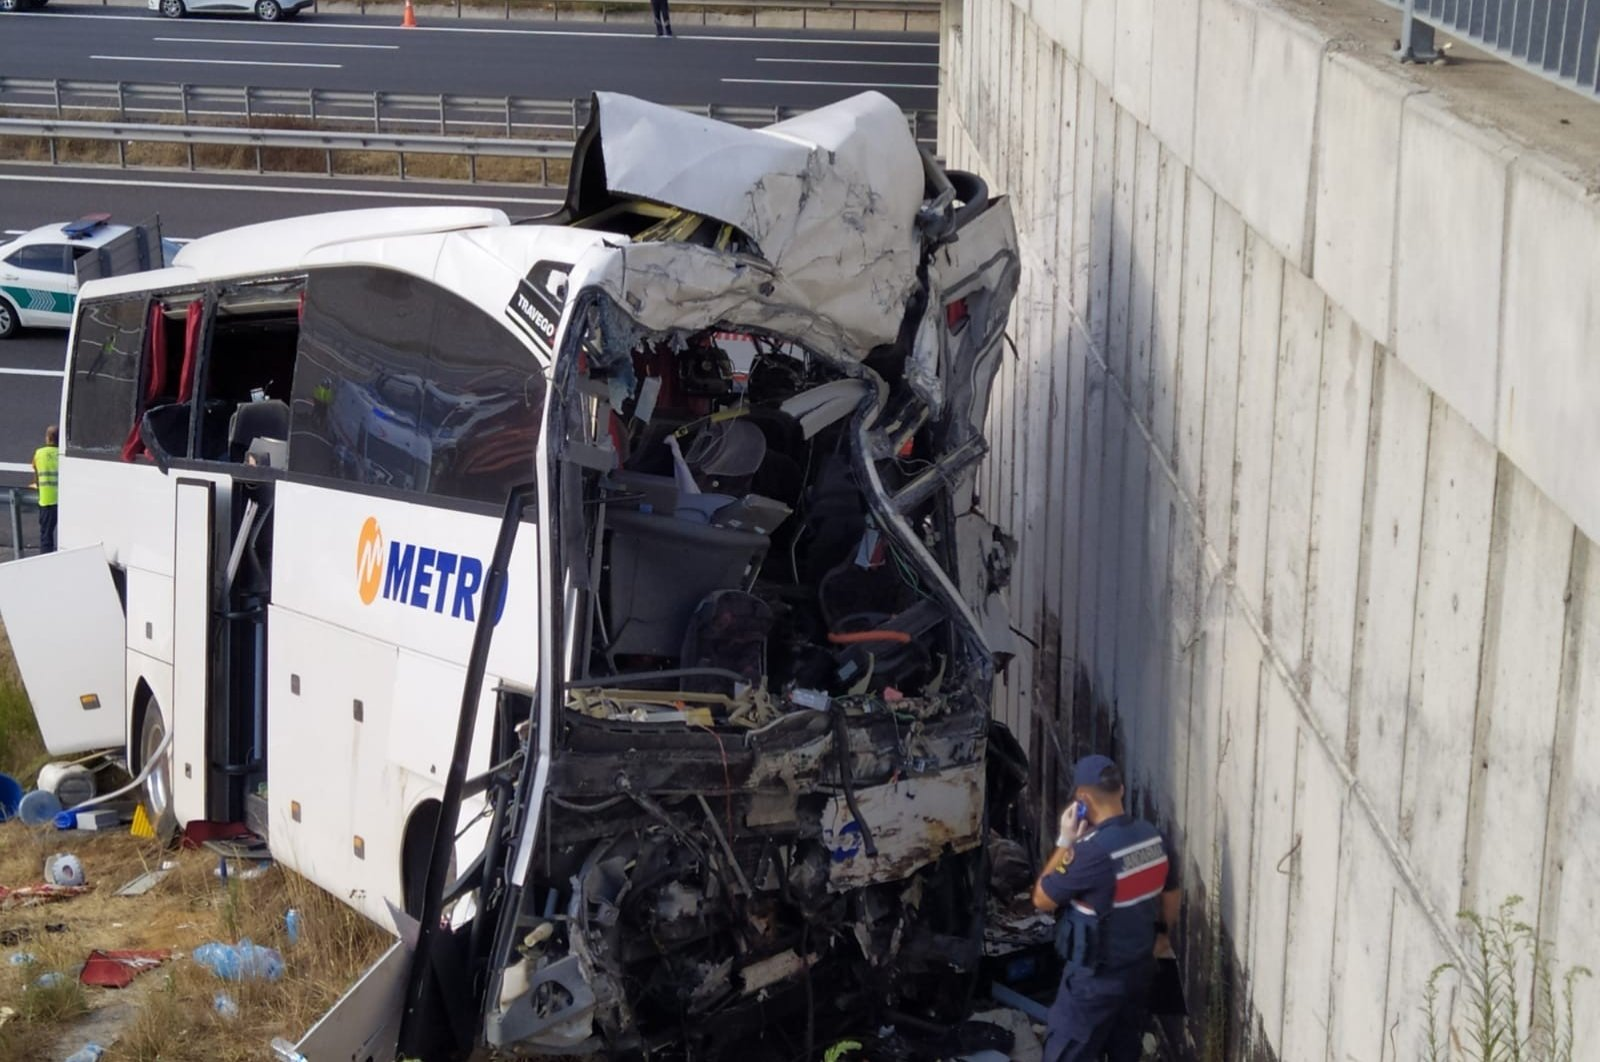 A passenger bus crashed into the wall of an overpass in North Marmara Highway in Istanbul, Turkey, Aug. 9, 2020. (IHA Photo)